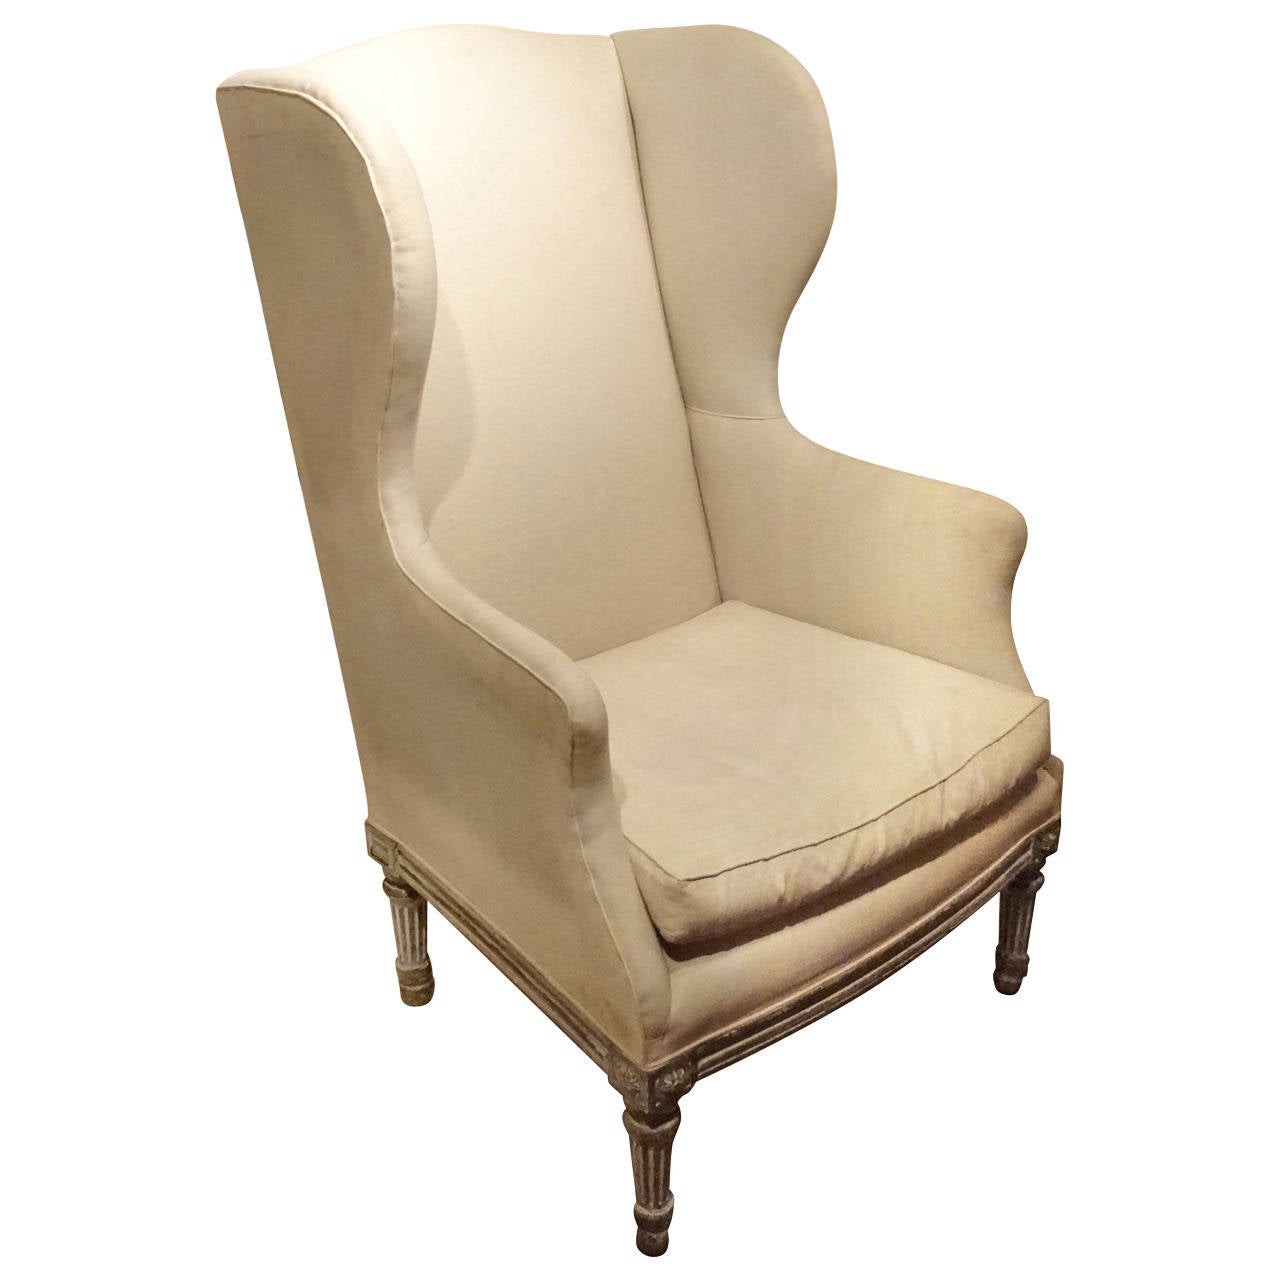 19th century french wing armchair for sale at 1stdibs. Black Bedroom Furniture Sets. Home Design Ideas